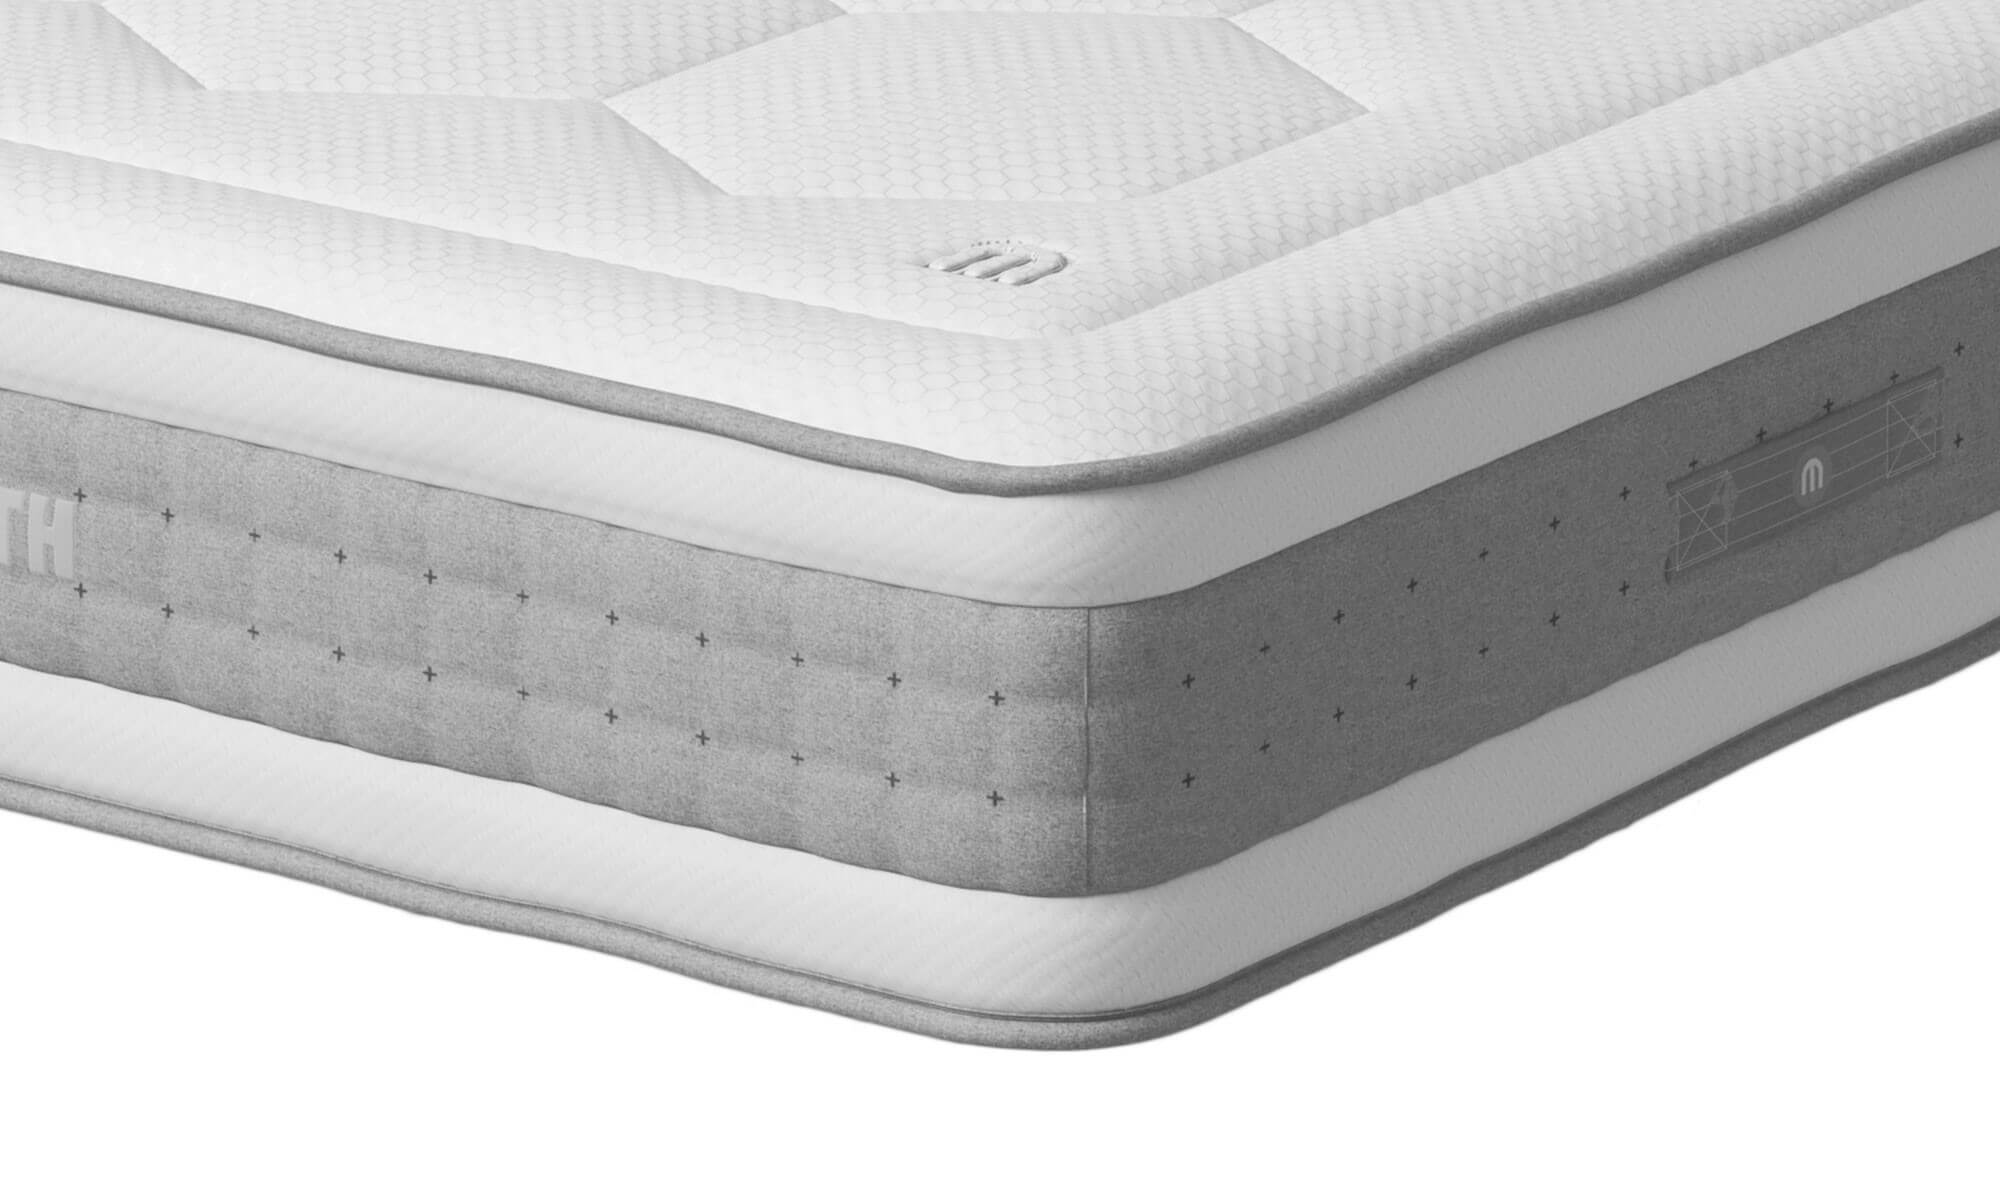 High quality mattress available at Fishpools